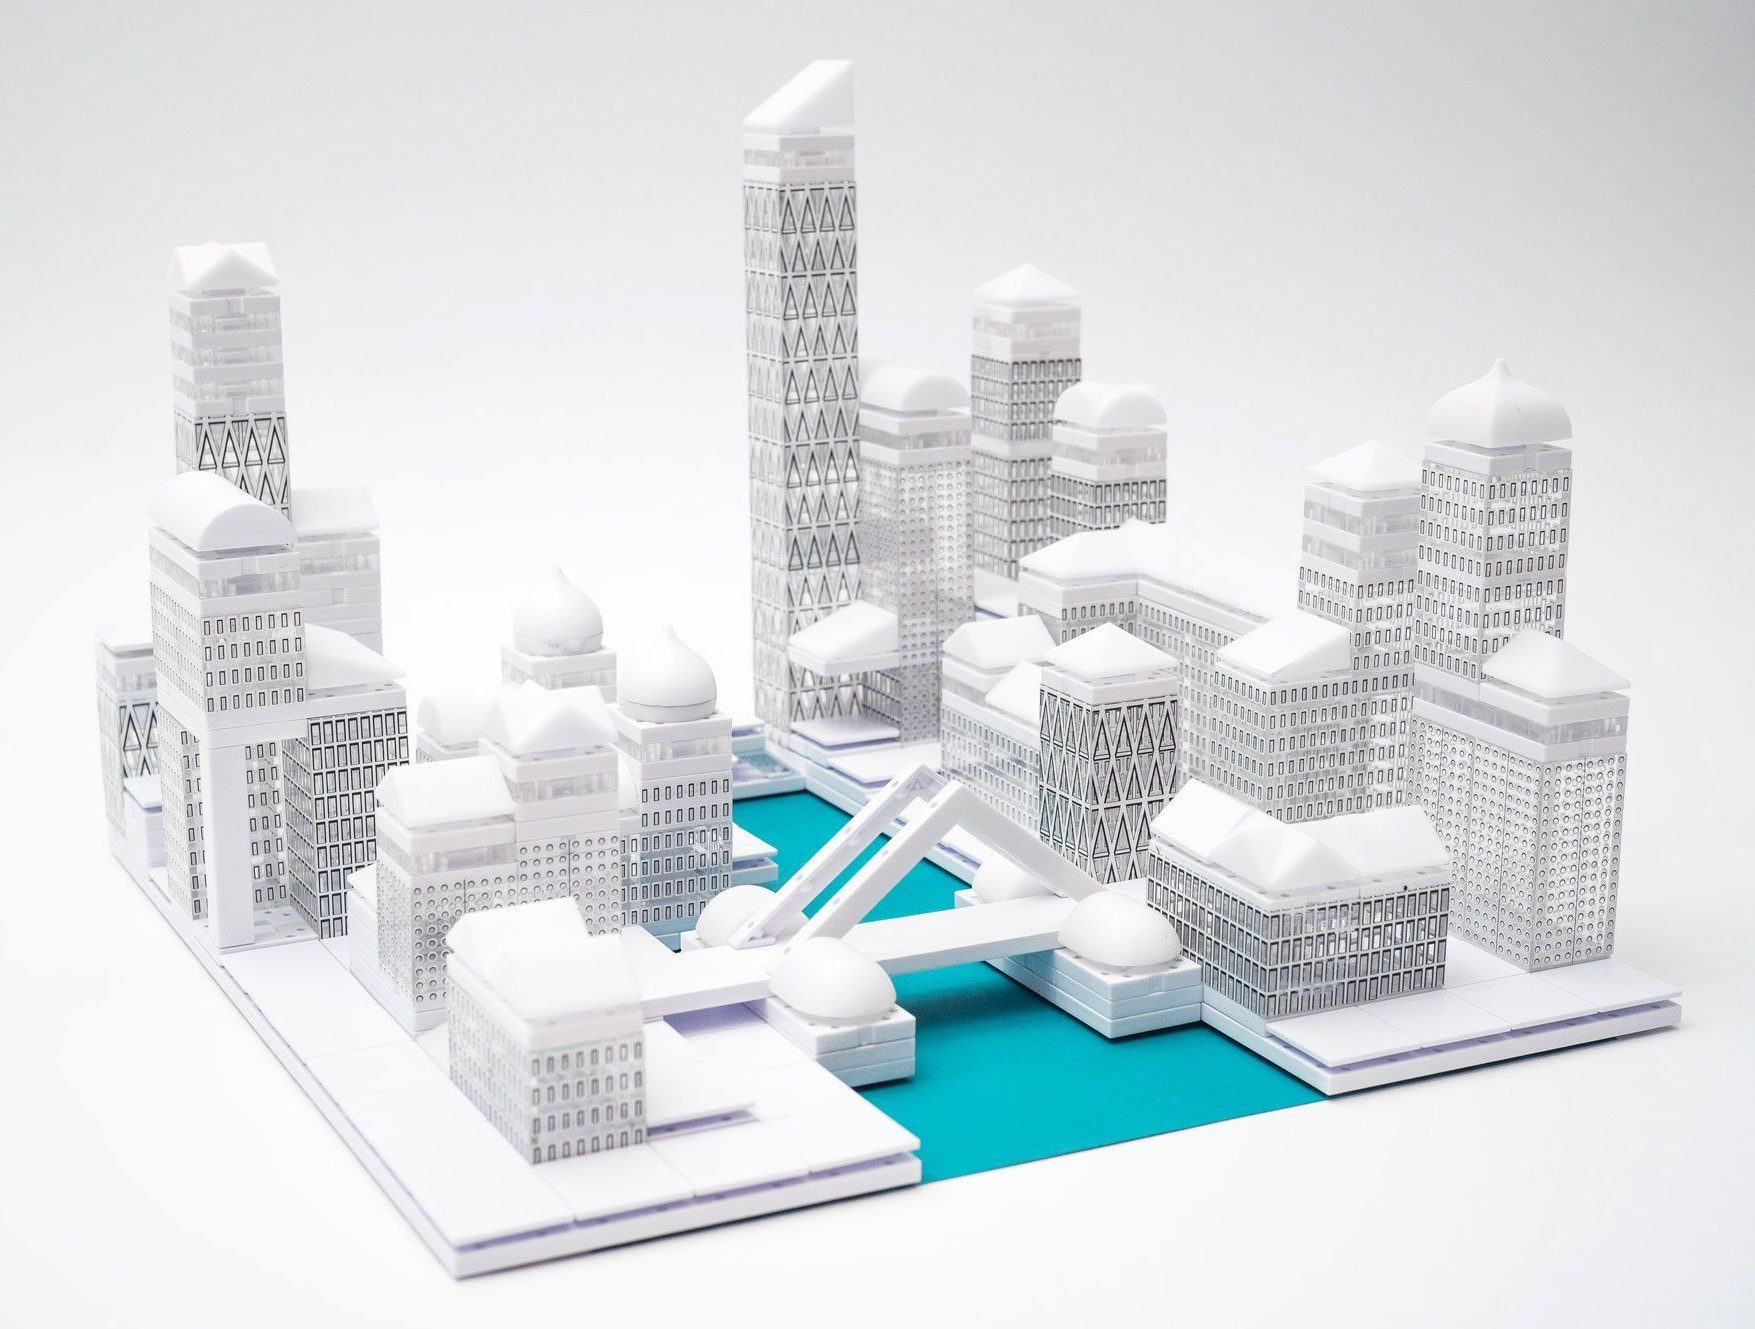 Architectural Model Kits Arckit 39s New Modeling Sets Make It Easy To Build